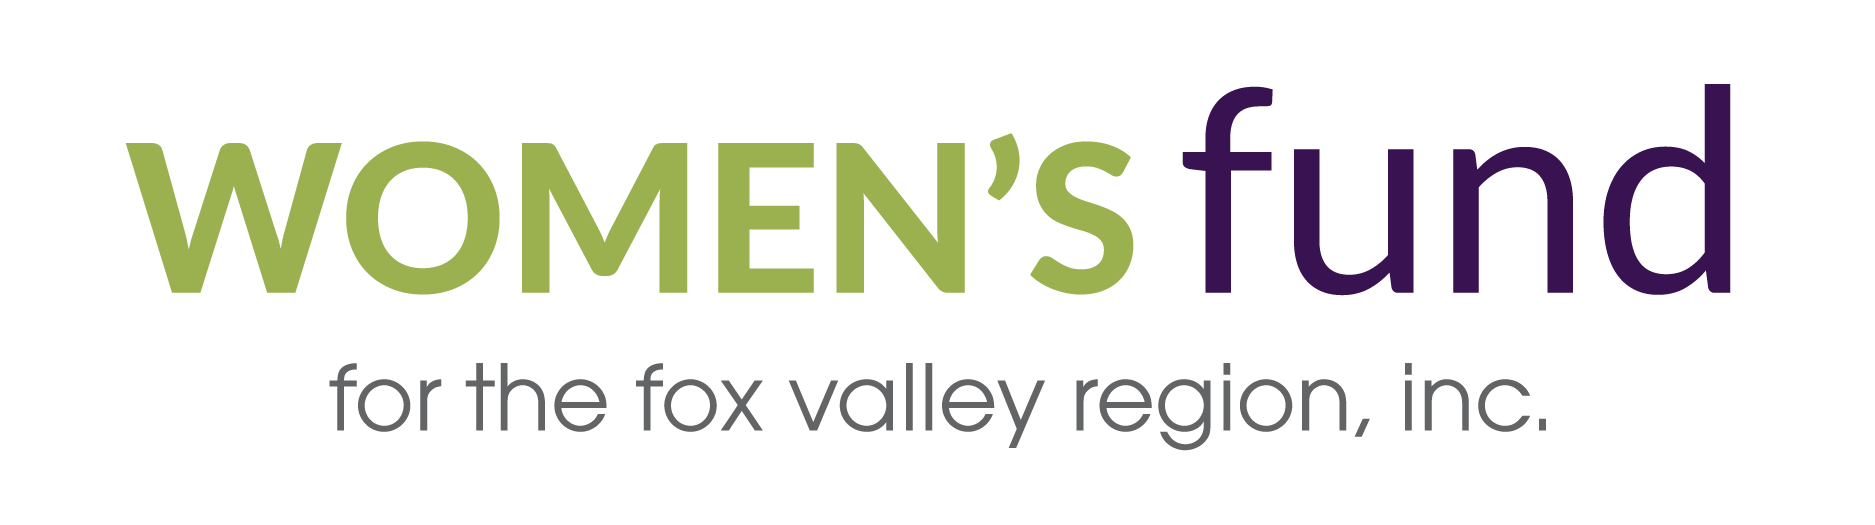 Women's Fund for the Fox Valley logo